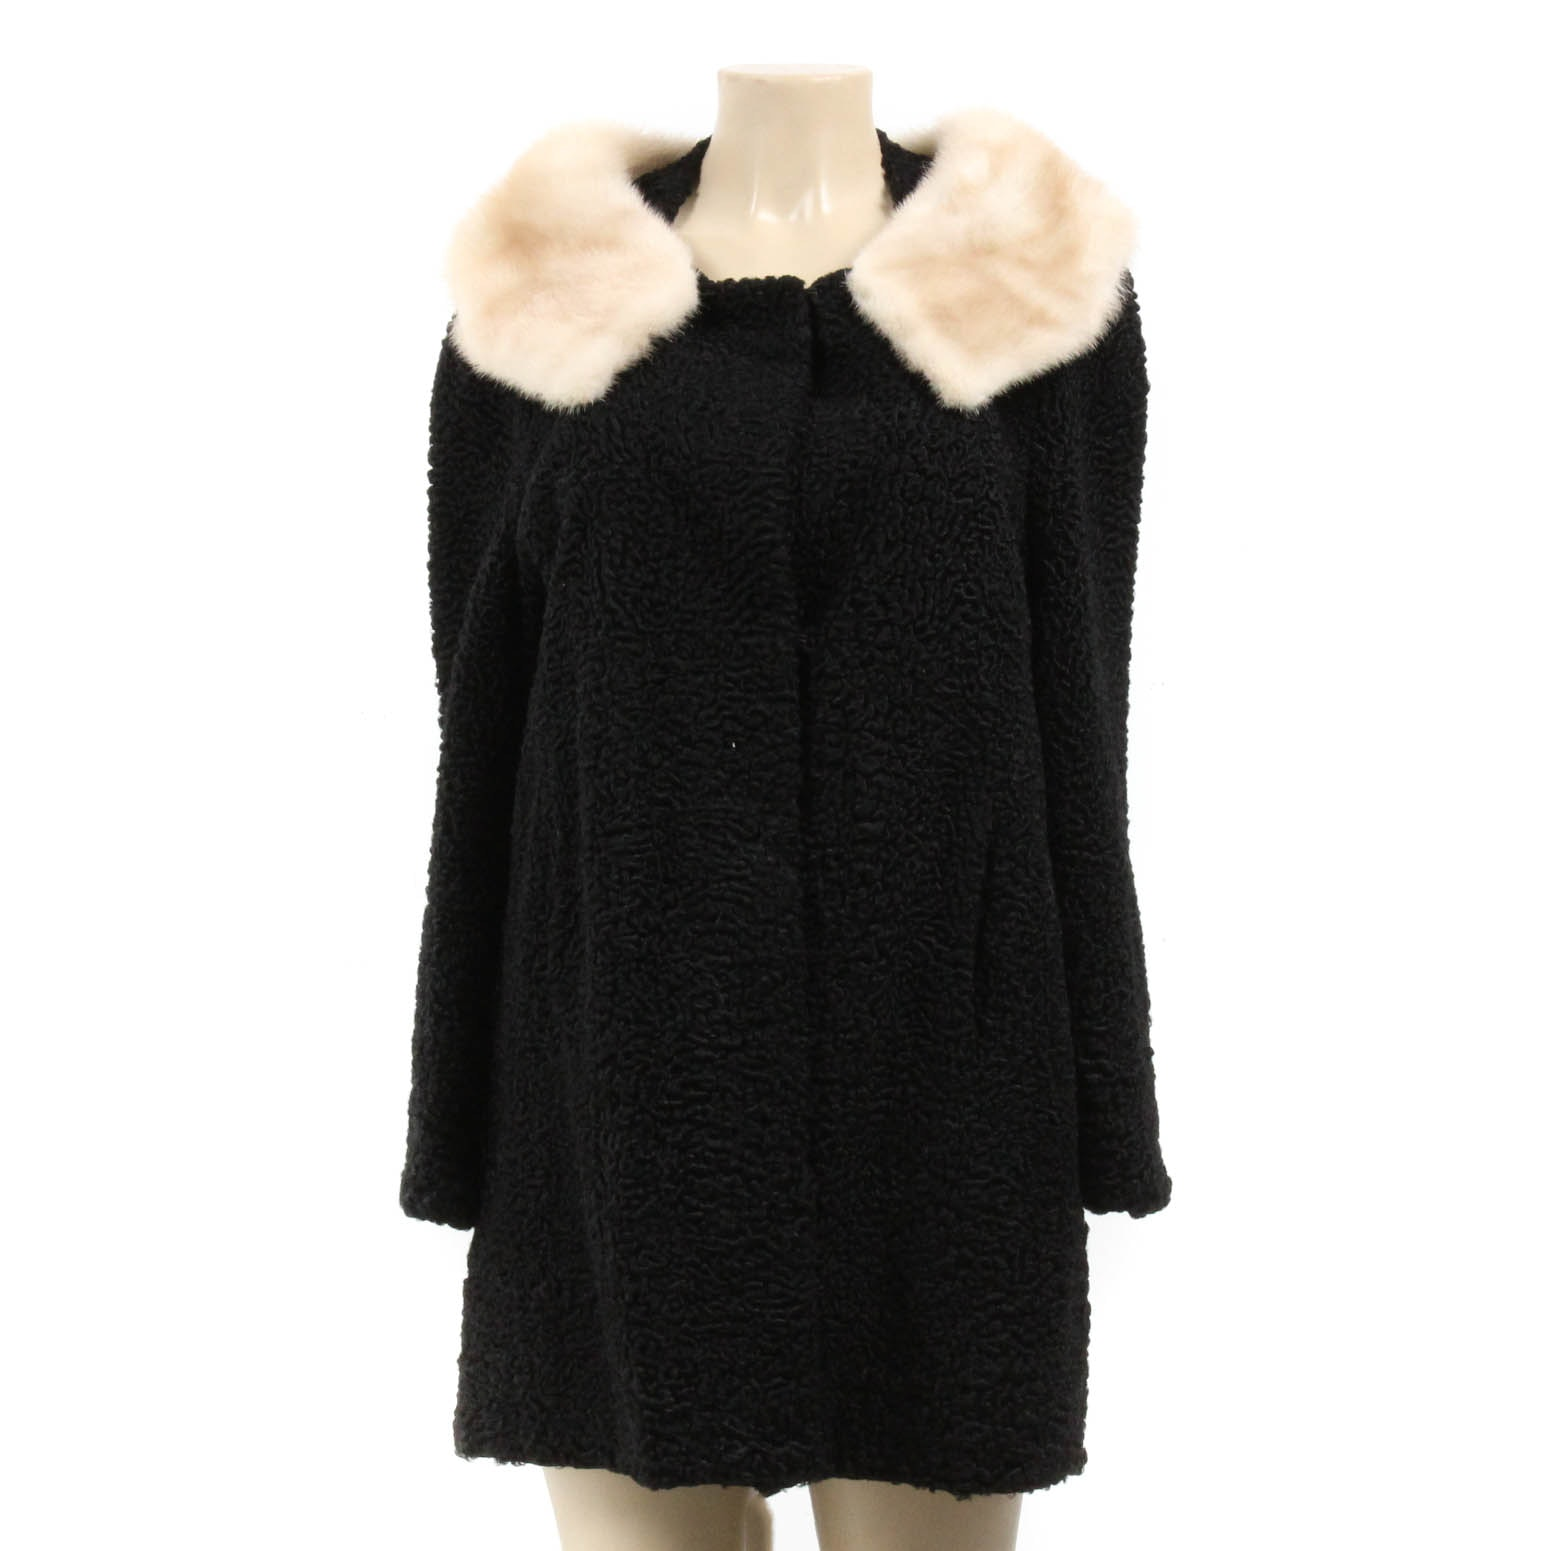 Vintage Hopper Furs Black Persian Lamb Coat With Platinum Mink Collar